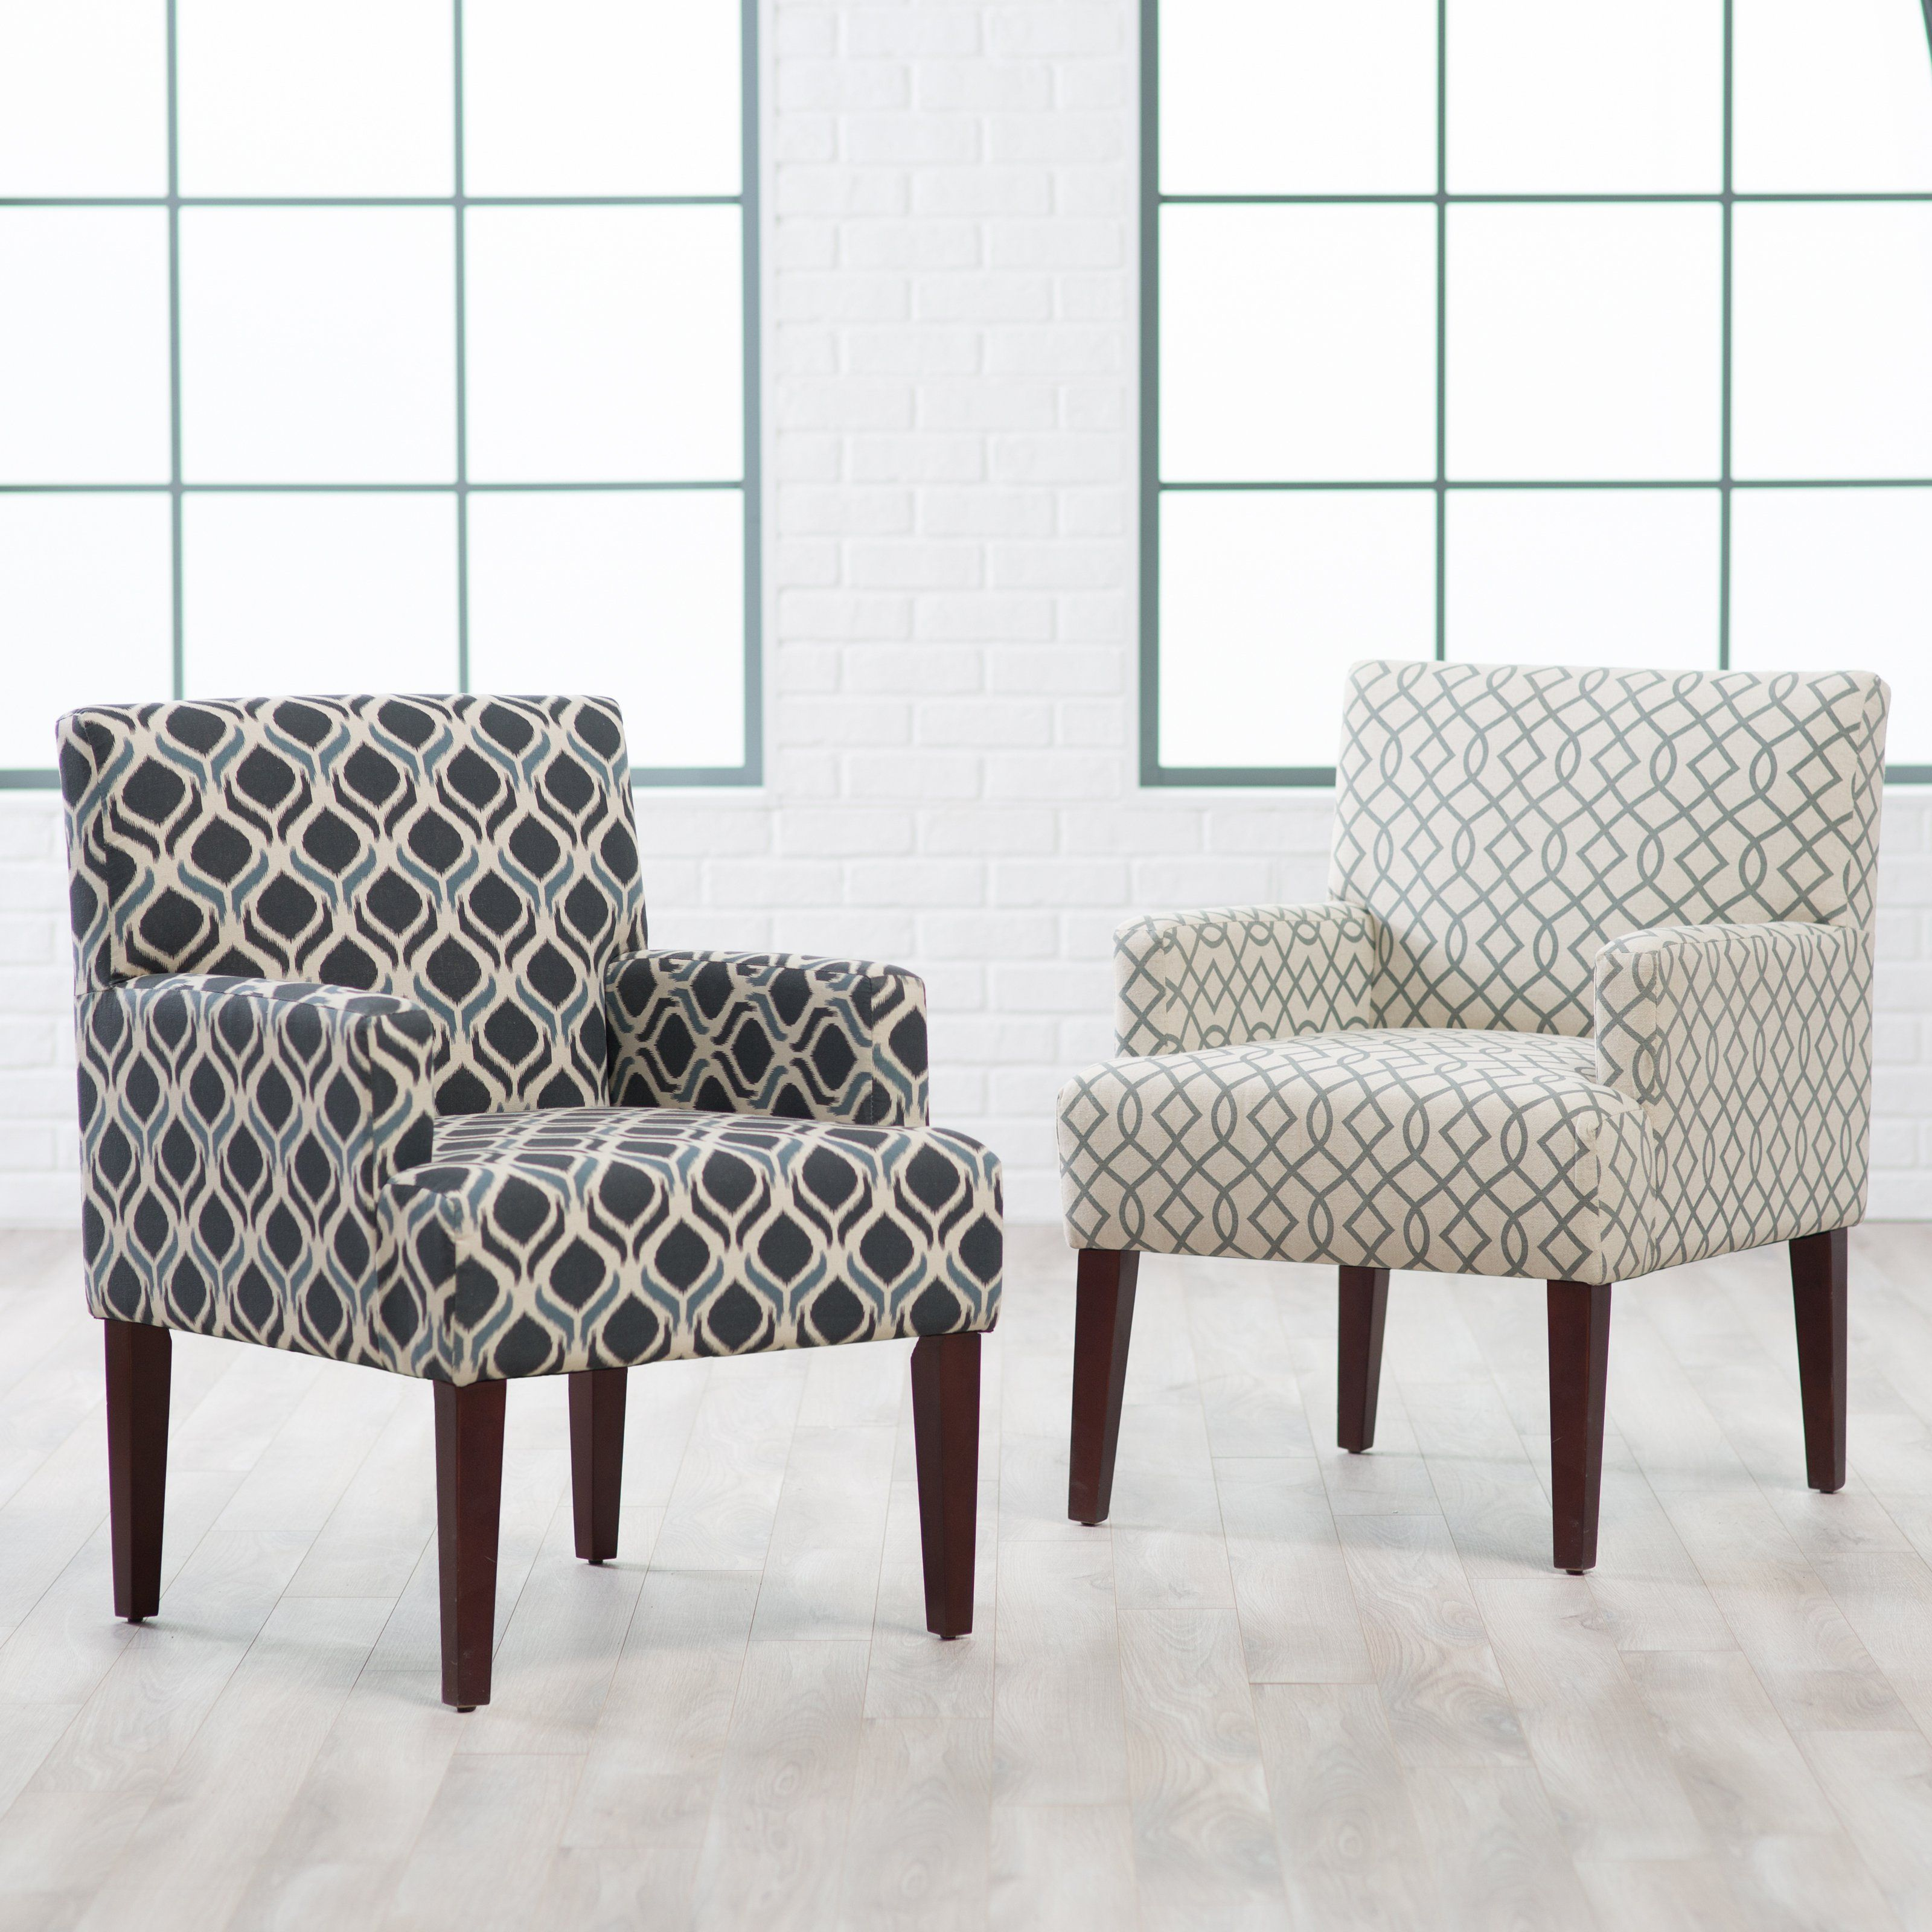 chairs for living room clearance. Belham Living Geo Accent Chair with Arms  When you re piecing together a living room or bedroom seating ensemble the transitional